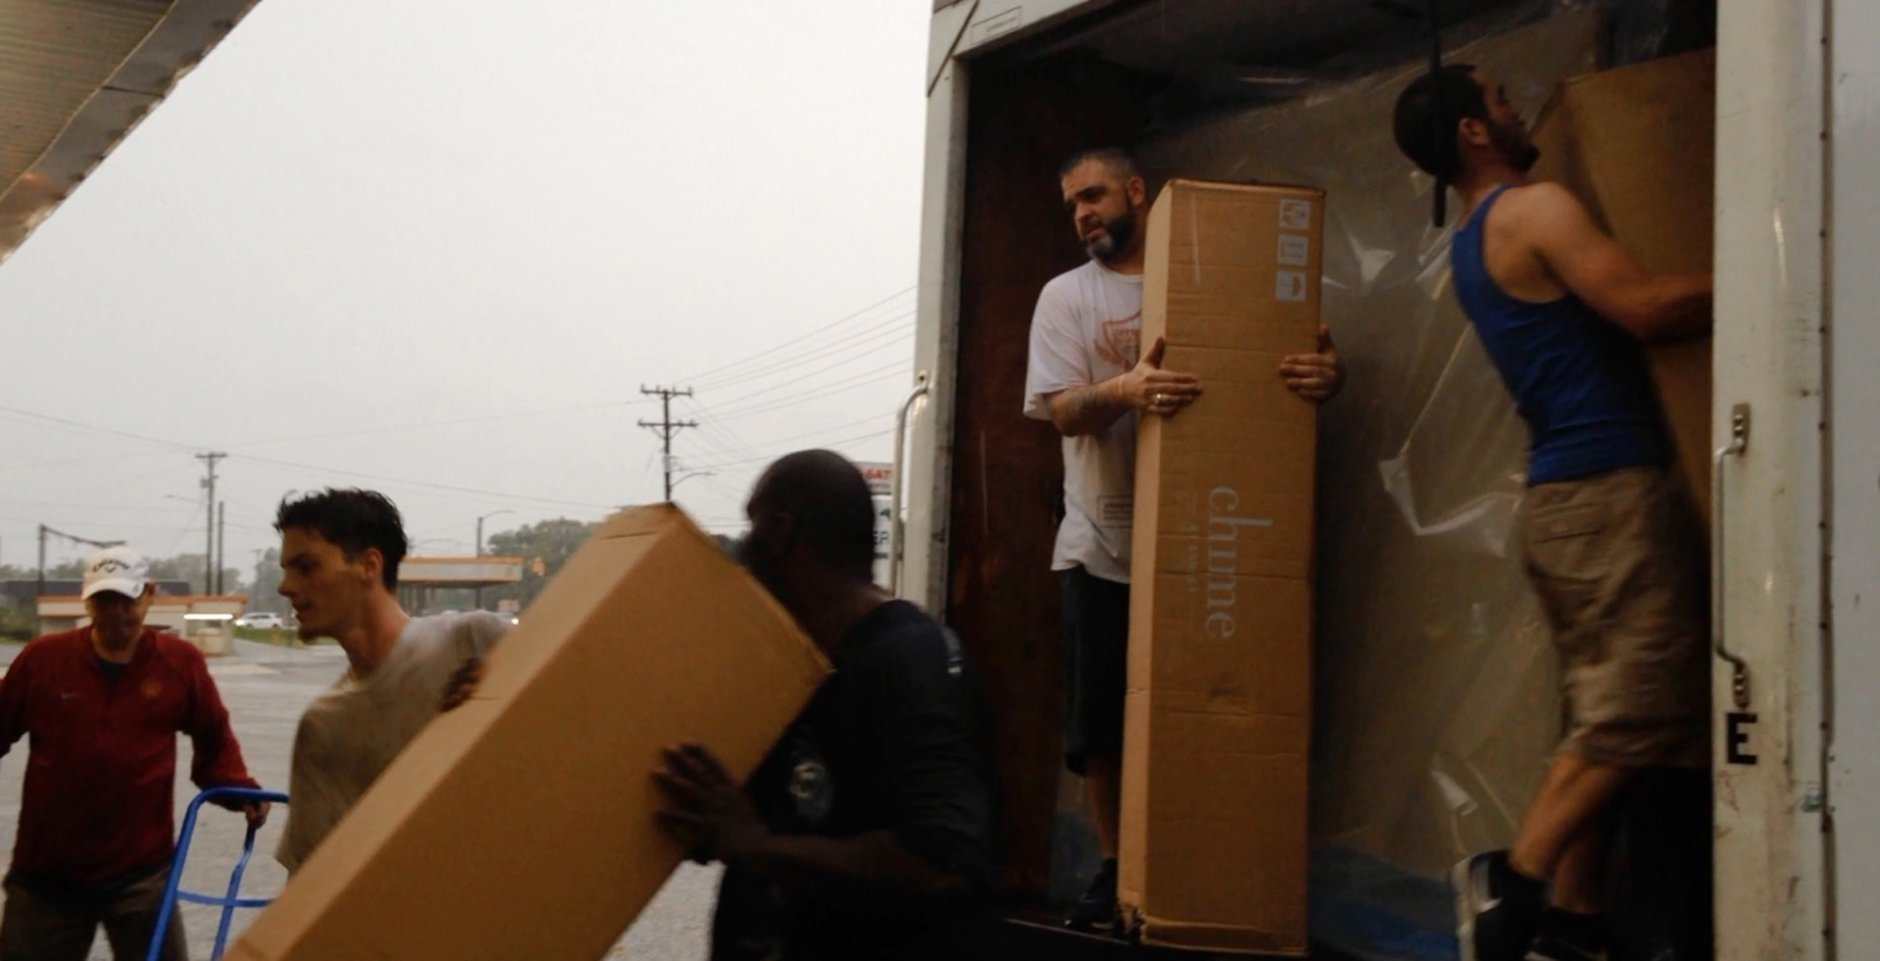 Rain-soaked furniture store workers load boxes into a truck, Saturday, Sept. 15, 2018, in Fayetteville, N.C., less than a mile from the Cape Fear River, which is set to crest at 62 feet early Tuesday. When John Rose who owns a furniture business heard about possible flooding, he quickly moved to have a crew empty more than 1,000 mattresses from a warehouse located in a low-lying strip mall threatened by the coming surge of water.  (AP Photo/Alex Derosier)